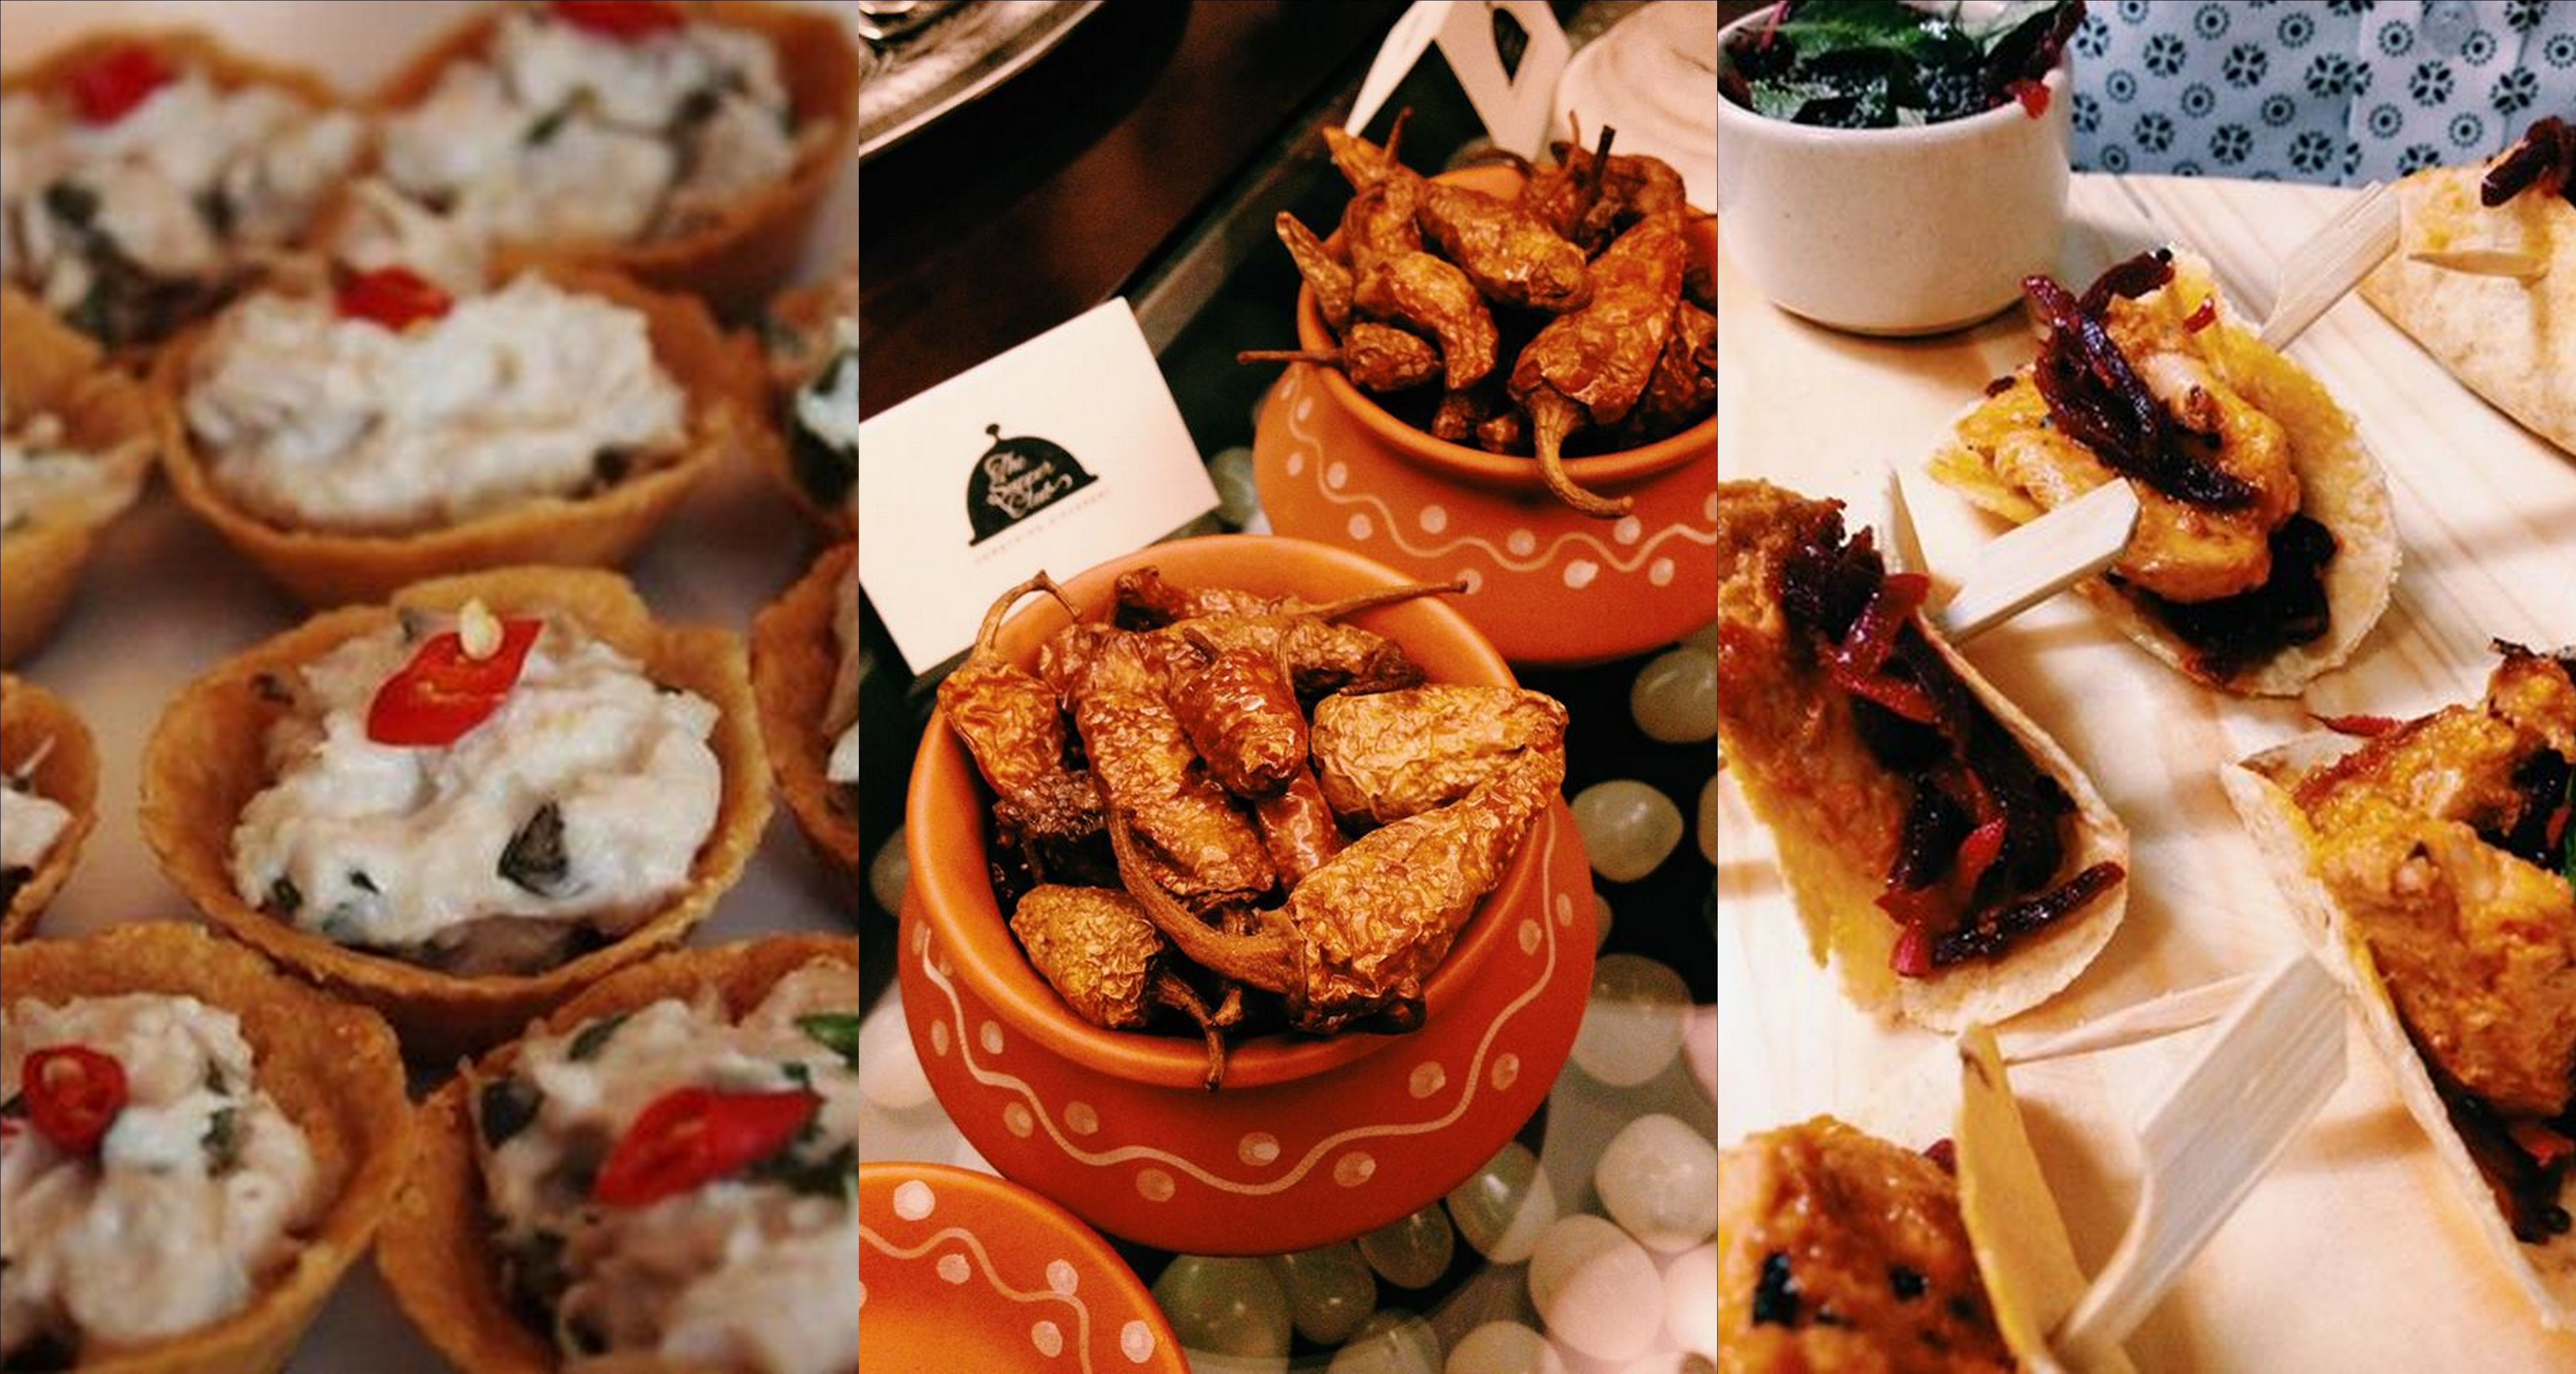 Cater to The Crowd |11 Caterers on Call for Tis Season